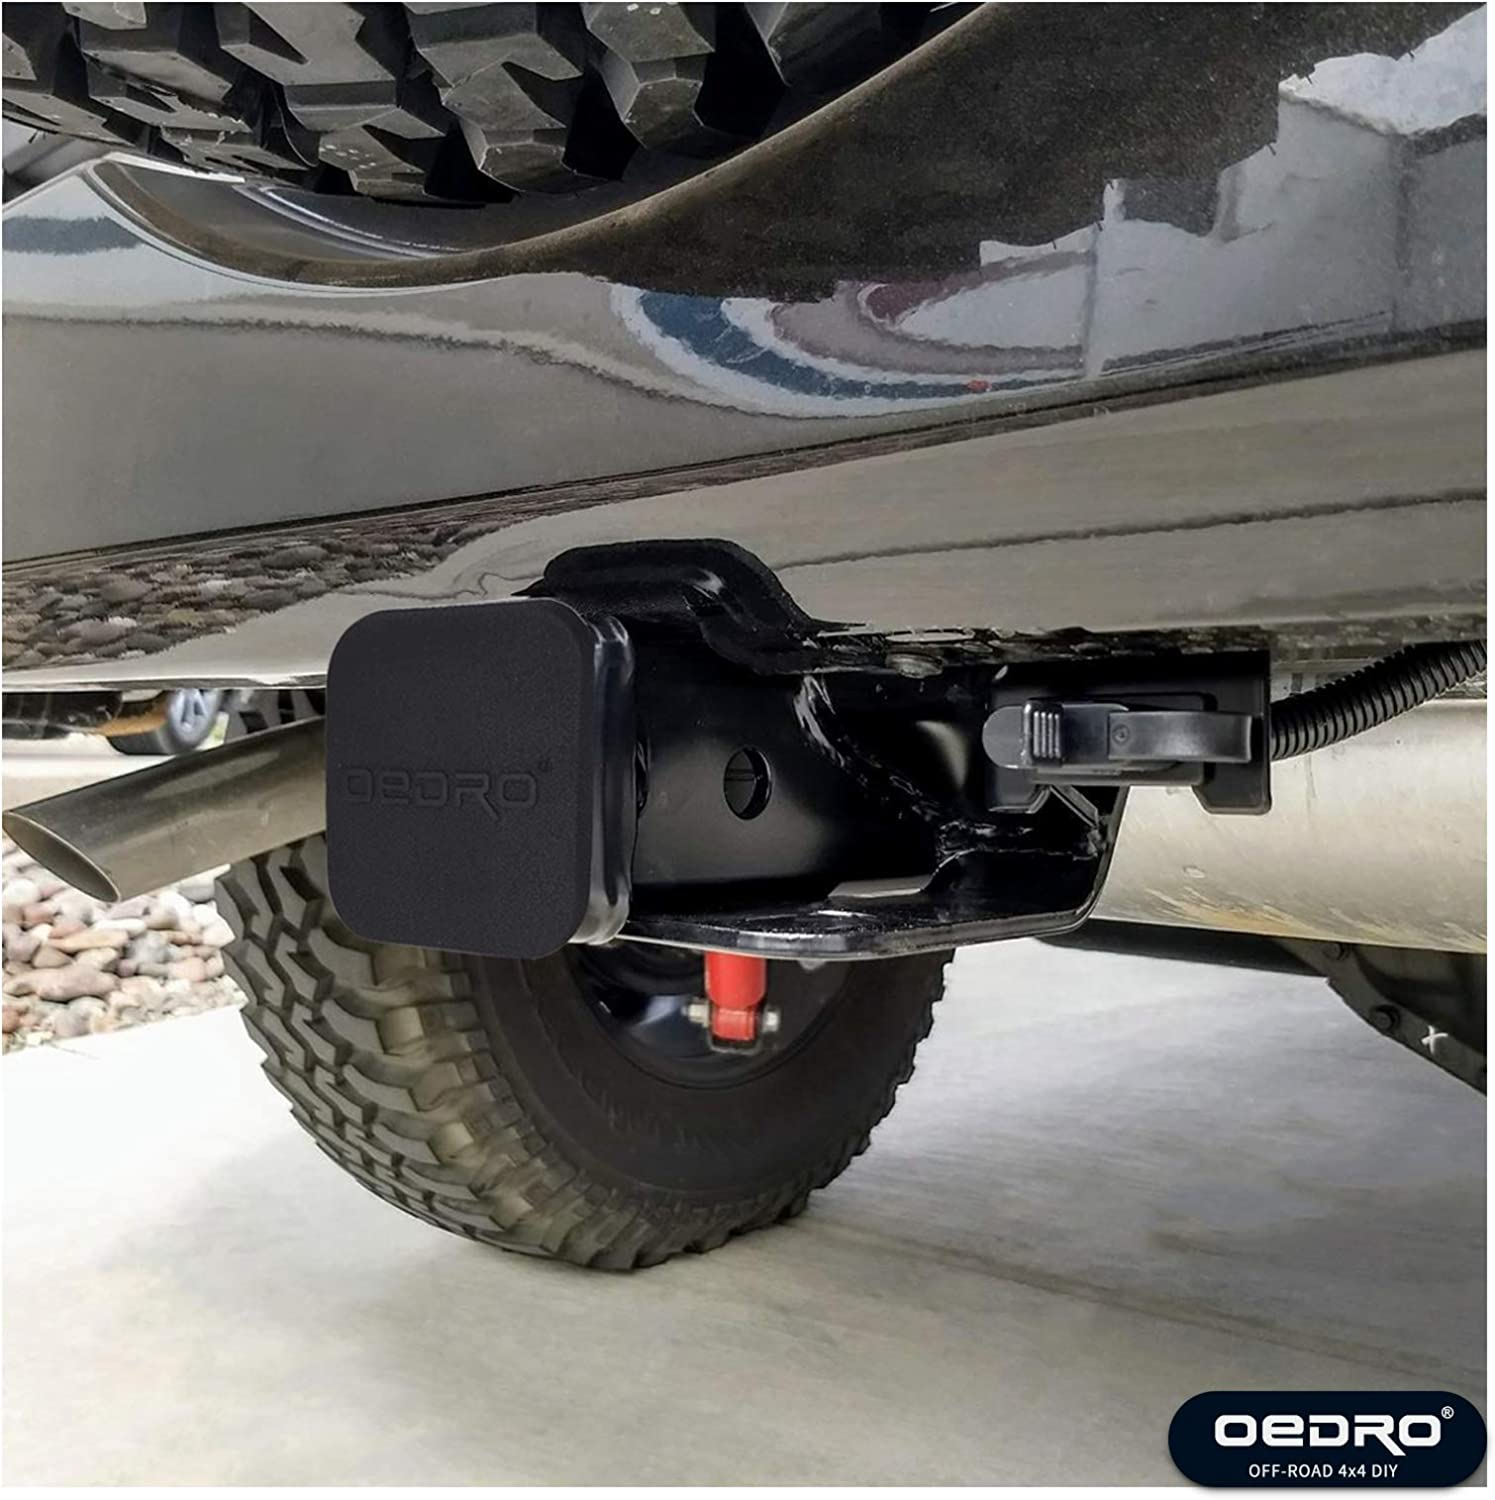 Class 3 BulbForst Jeep Trailer Hitch with 2 Receiver for Wrangler JK /& Unlimited JKU 2007-2018 Tow Accessories